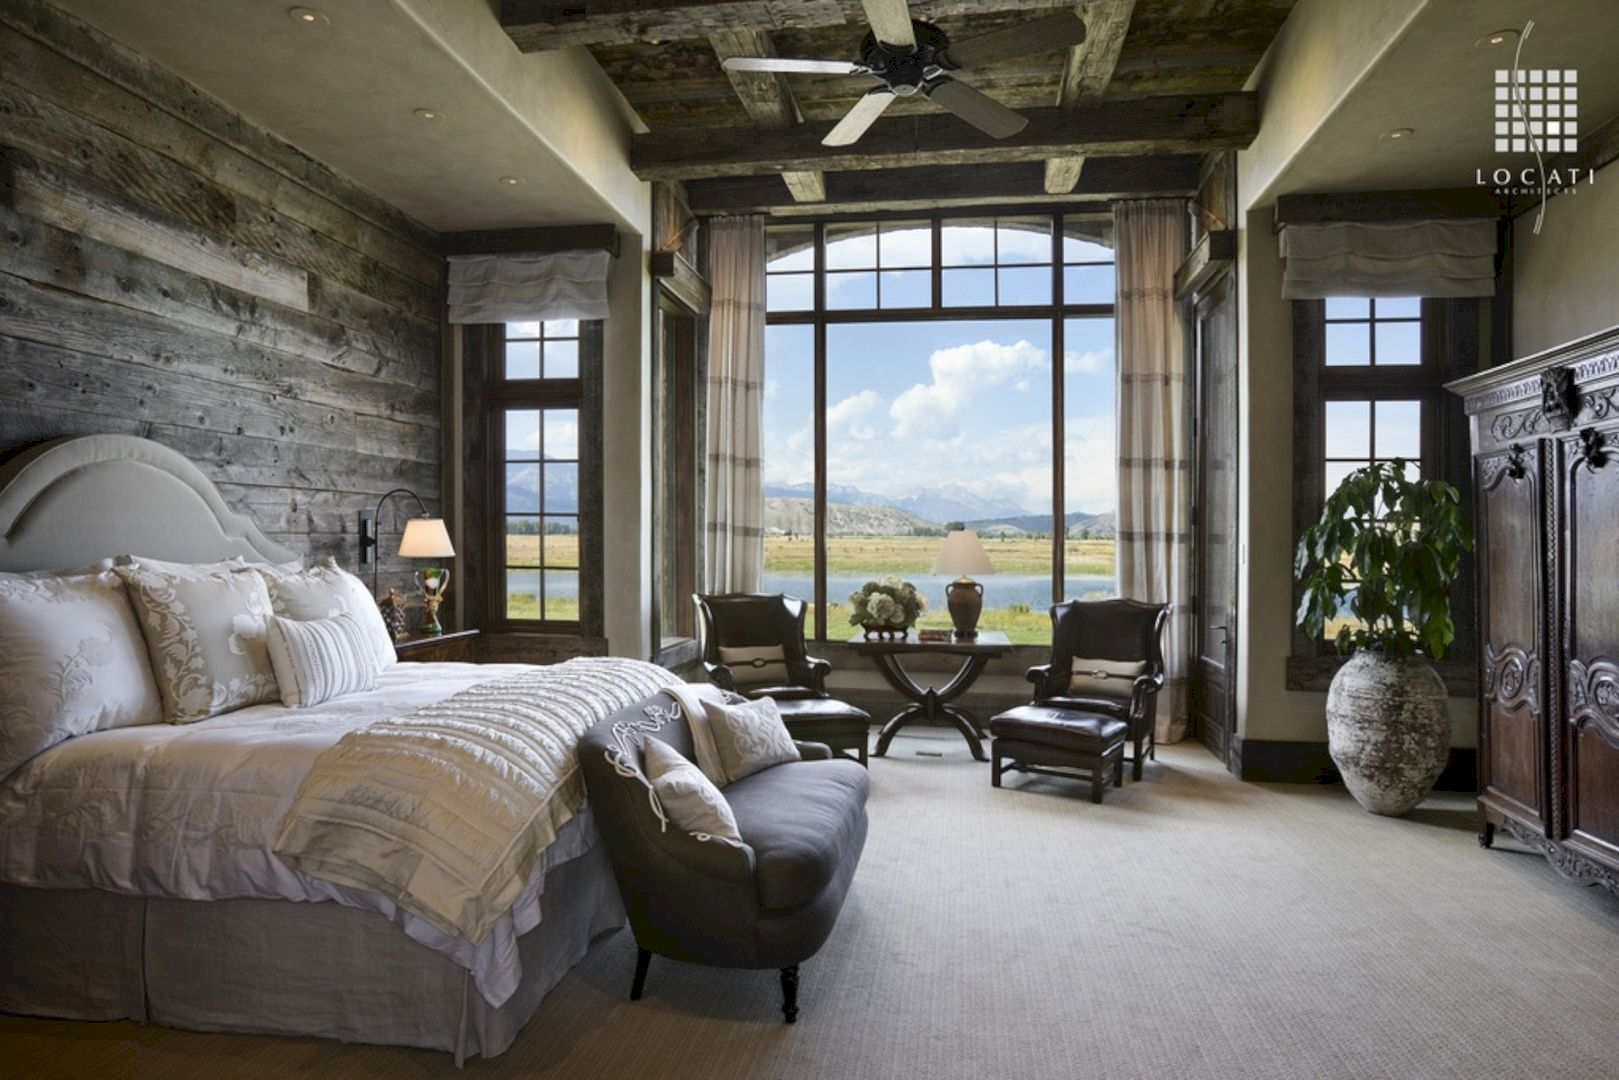 16 Luxury Master Bedroom Designs